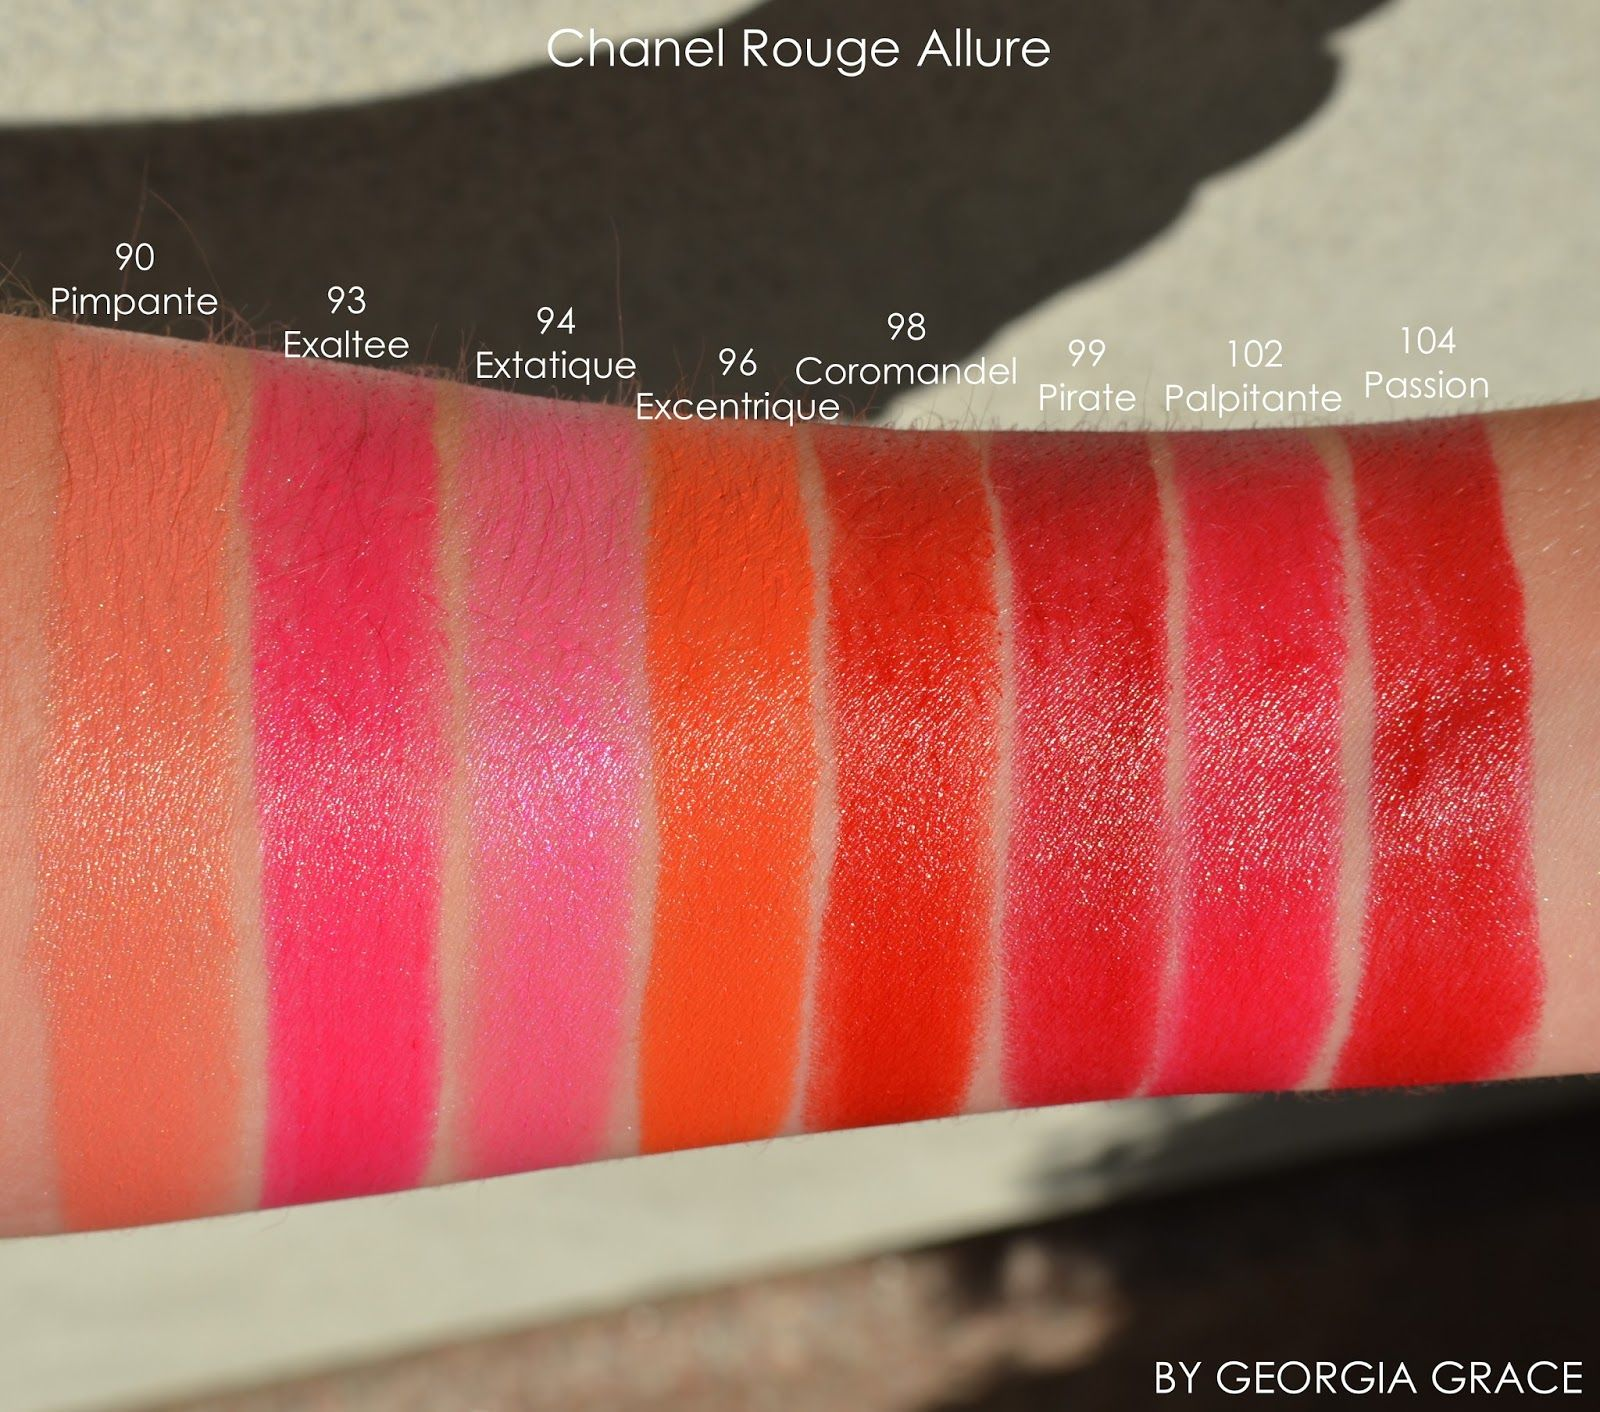 Chanel Rouge Allure Swatches of All Shades